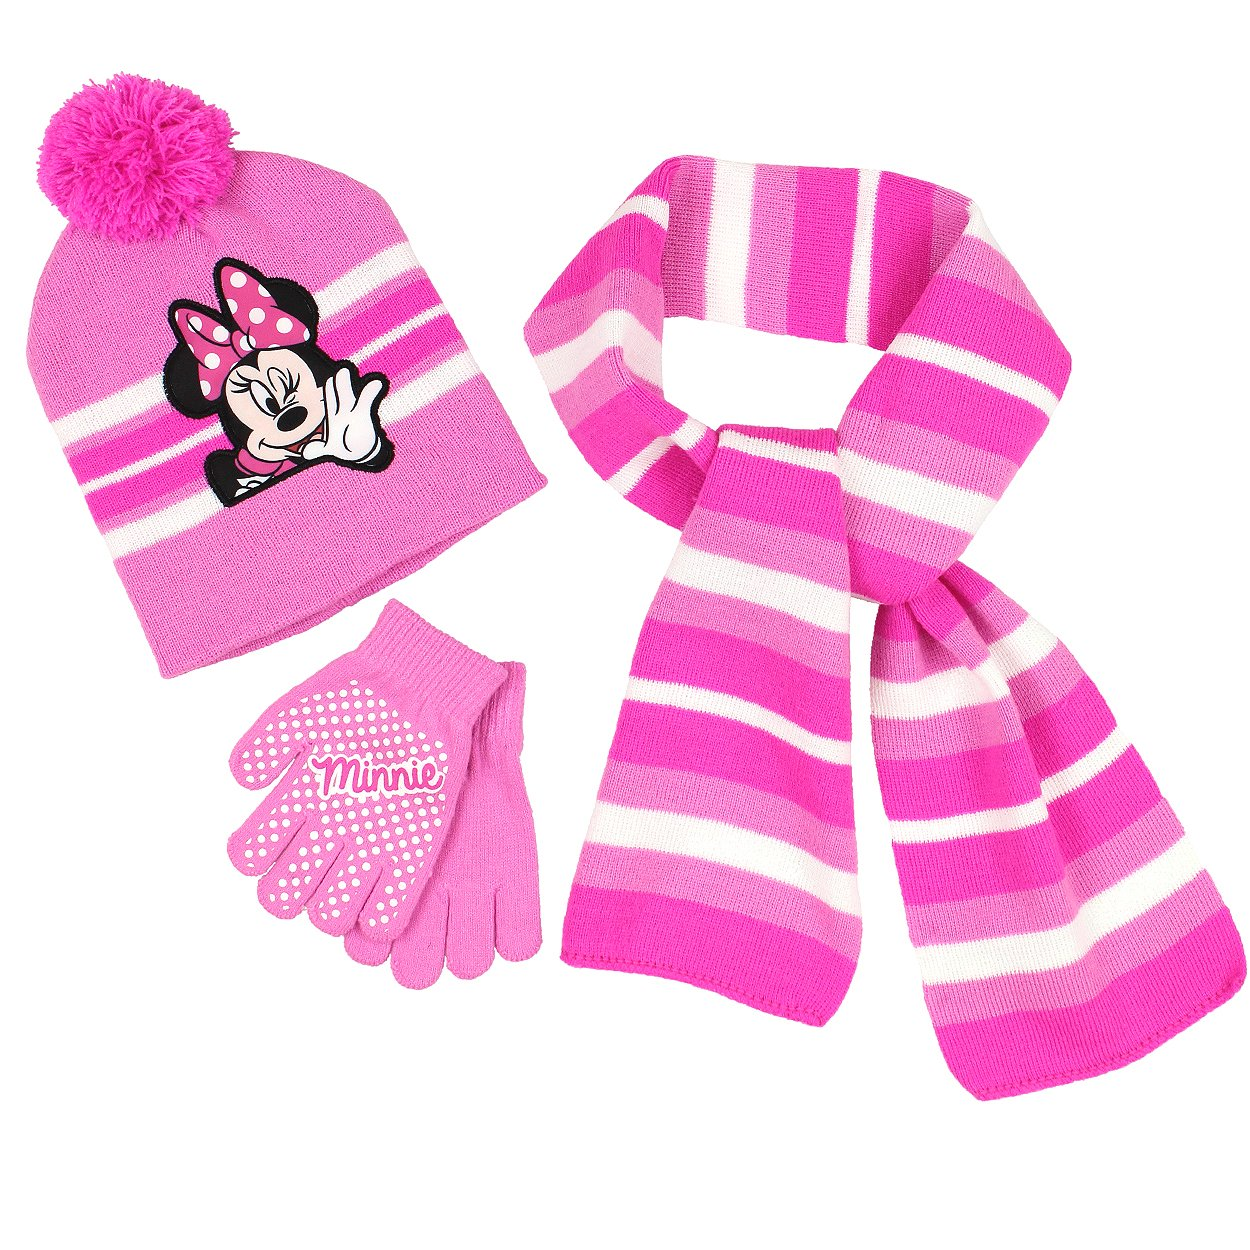 d045544dfd7 Minnie mouse girls piece beanie hat gloves and scarf set one size pink  clothing jpg 1250x1250